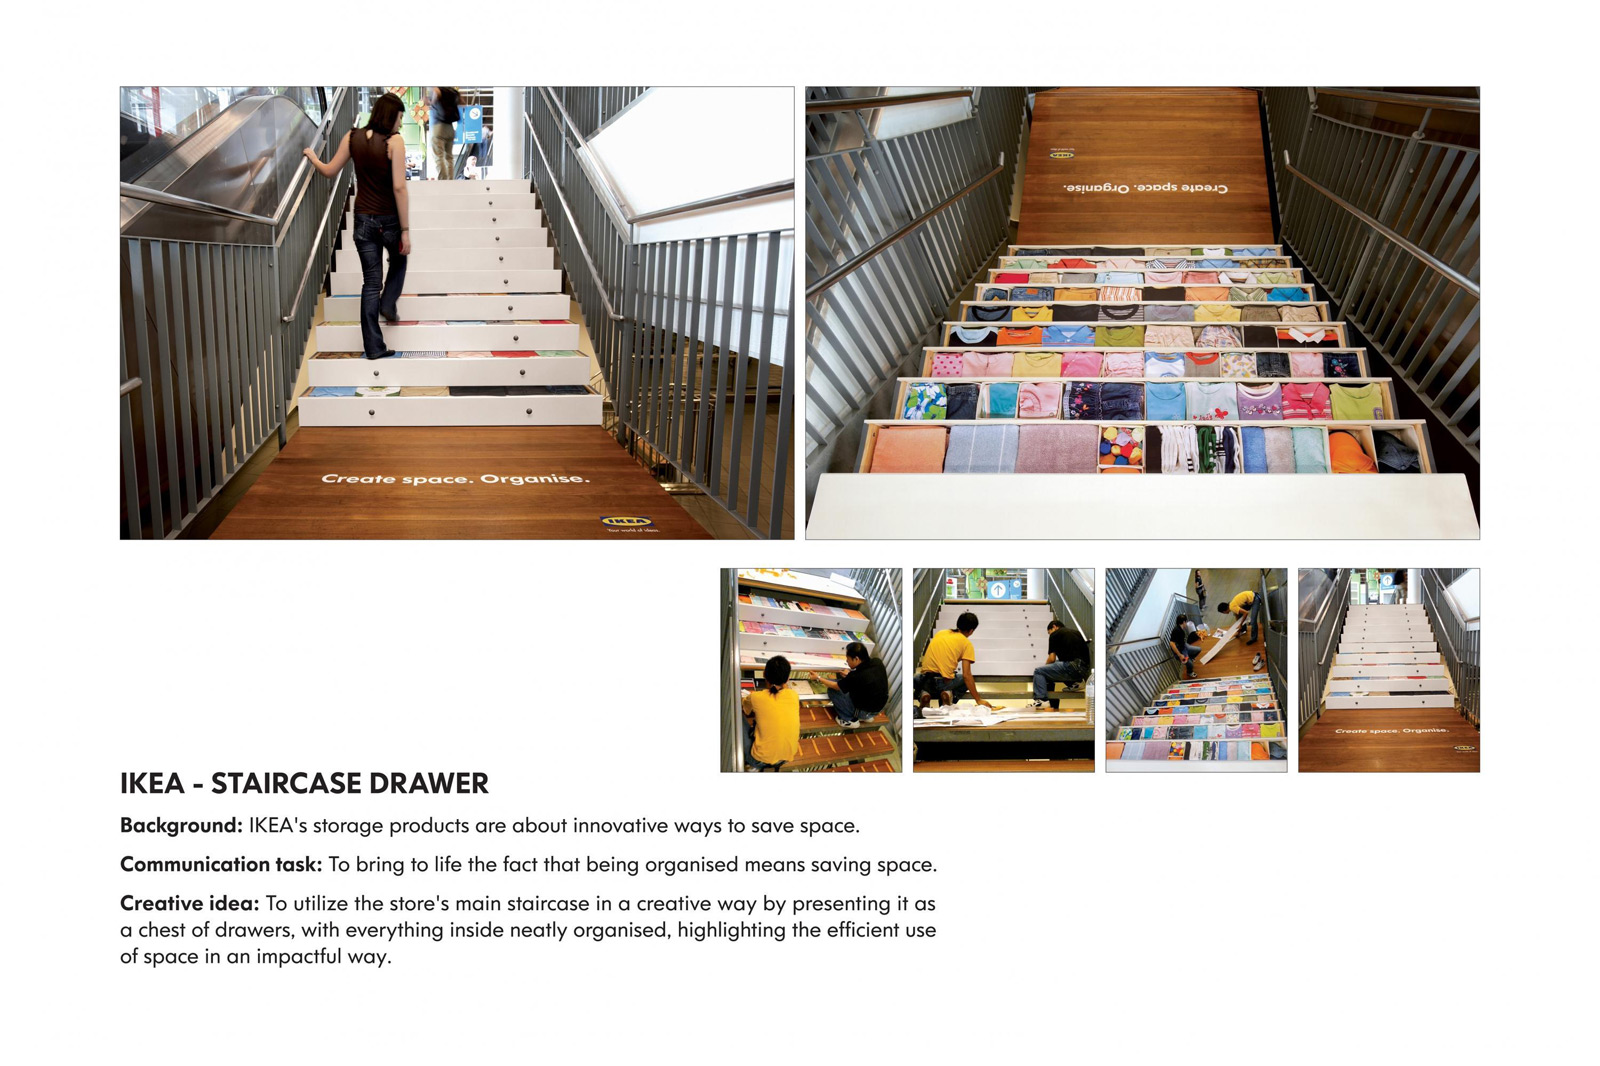 Ikea Staircase Guerrilla Marketing Example